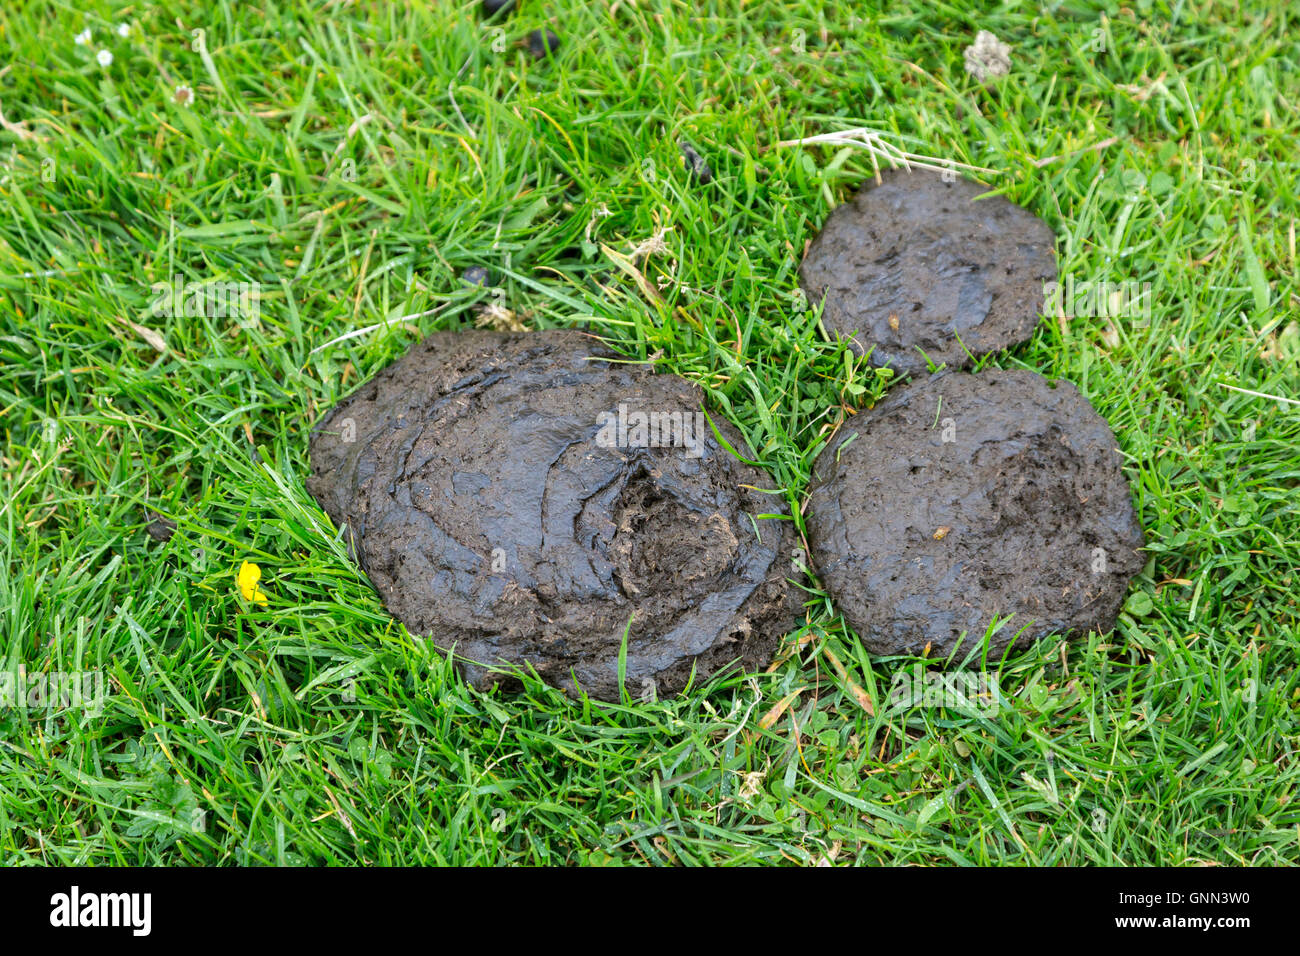 Northumberland, England, UK. Cow Manure in a Pasture on Hadrian's Wall Footpath. Stock Photo